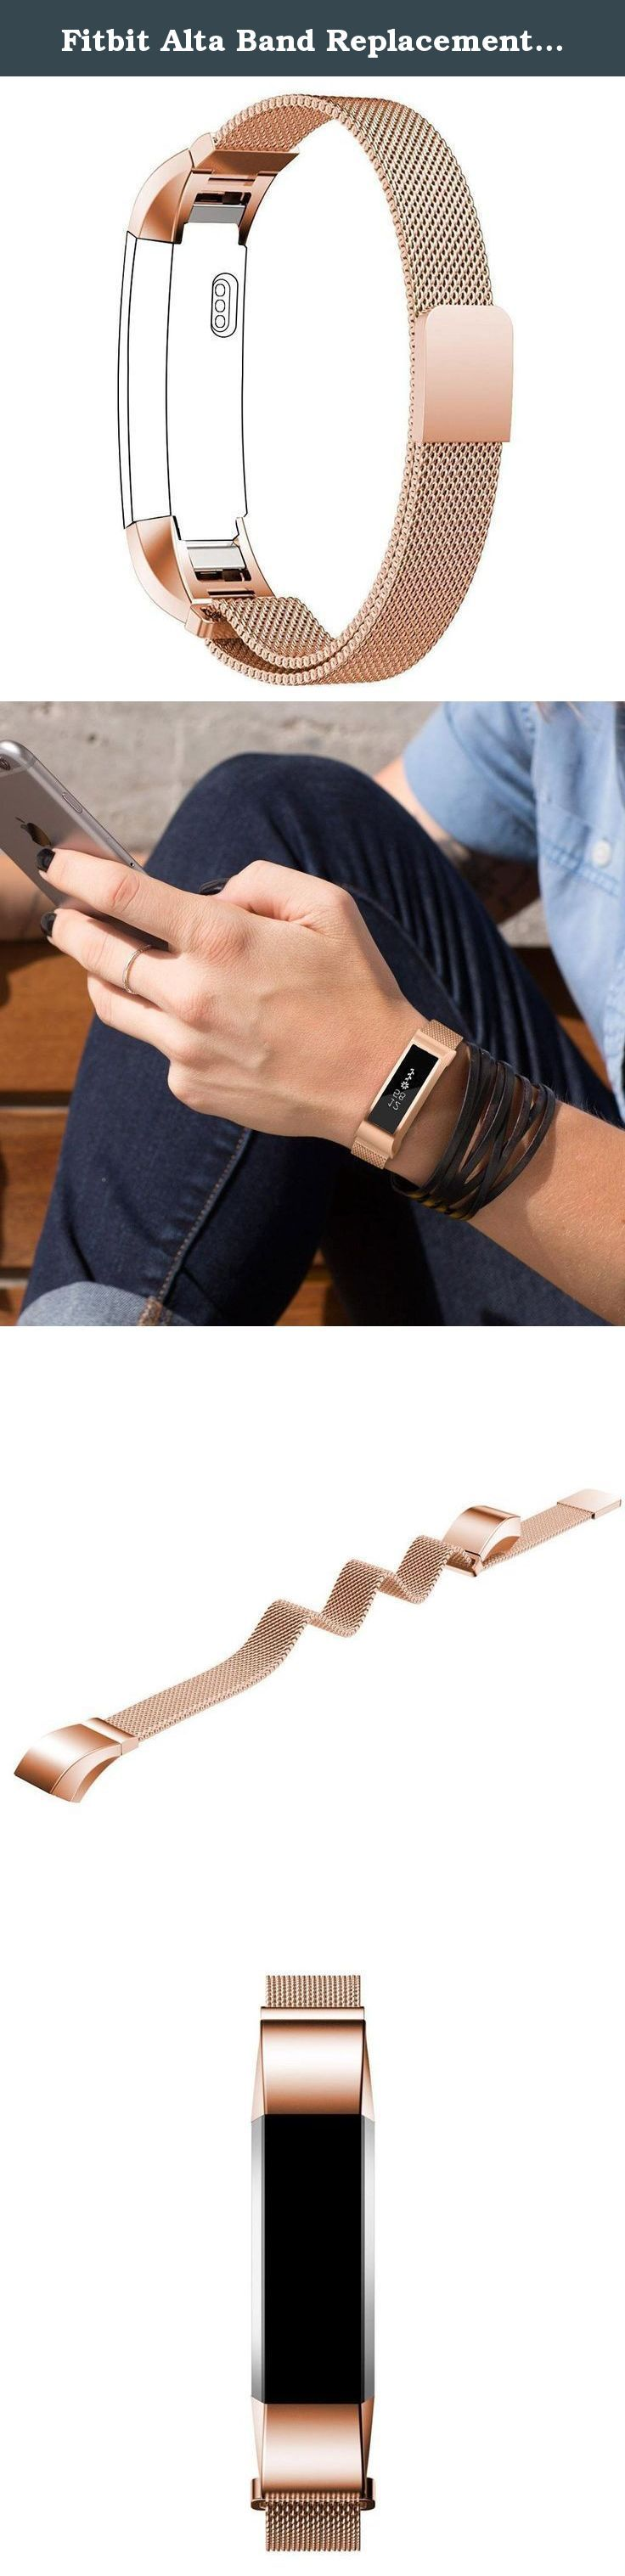 Fitbit Alta Band Replacement, Taotree Fully Magnetic Closure Clasp Mesh Loop Milanese Stainless Steel Replacement Accessory Bracelet Strap for Fitbit Alta Fitness Tracker (Rose Gold). Made for Fitbit Alta Fitness Tracker The exquisite milanese loop is spe